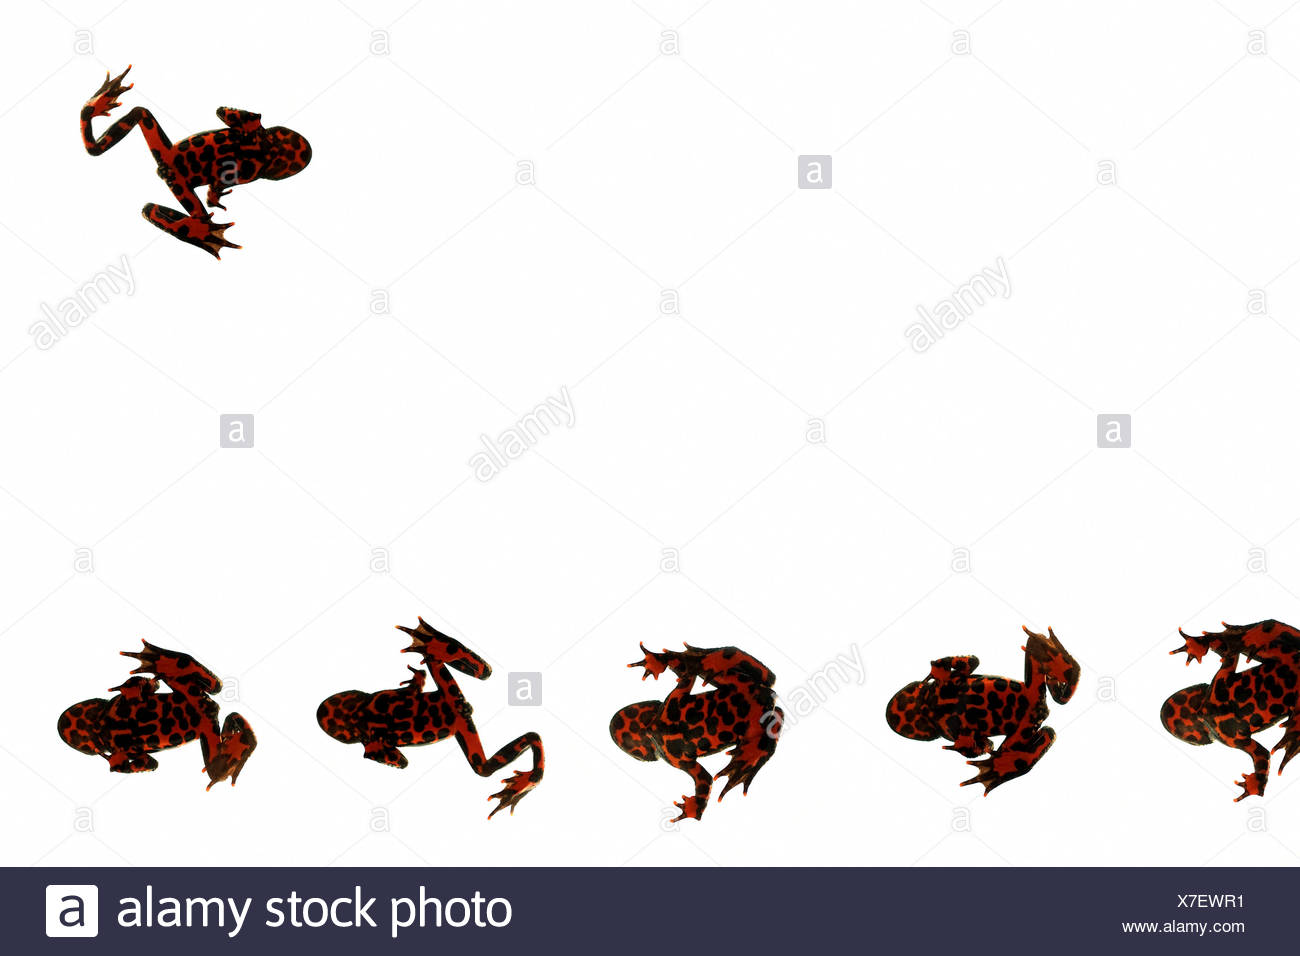 Fire belly frog silhouettes - Stock Image